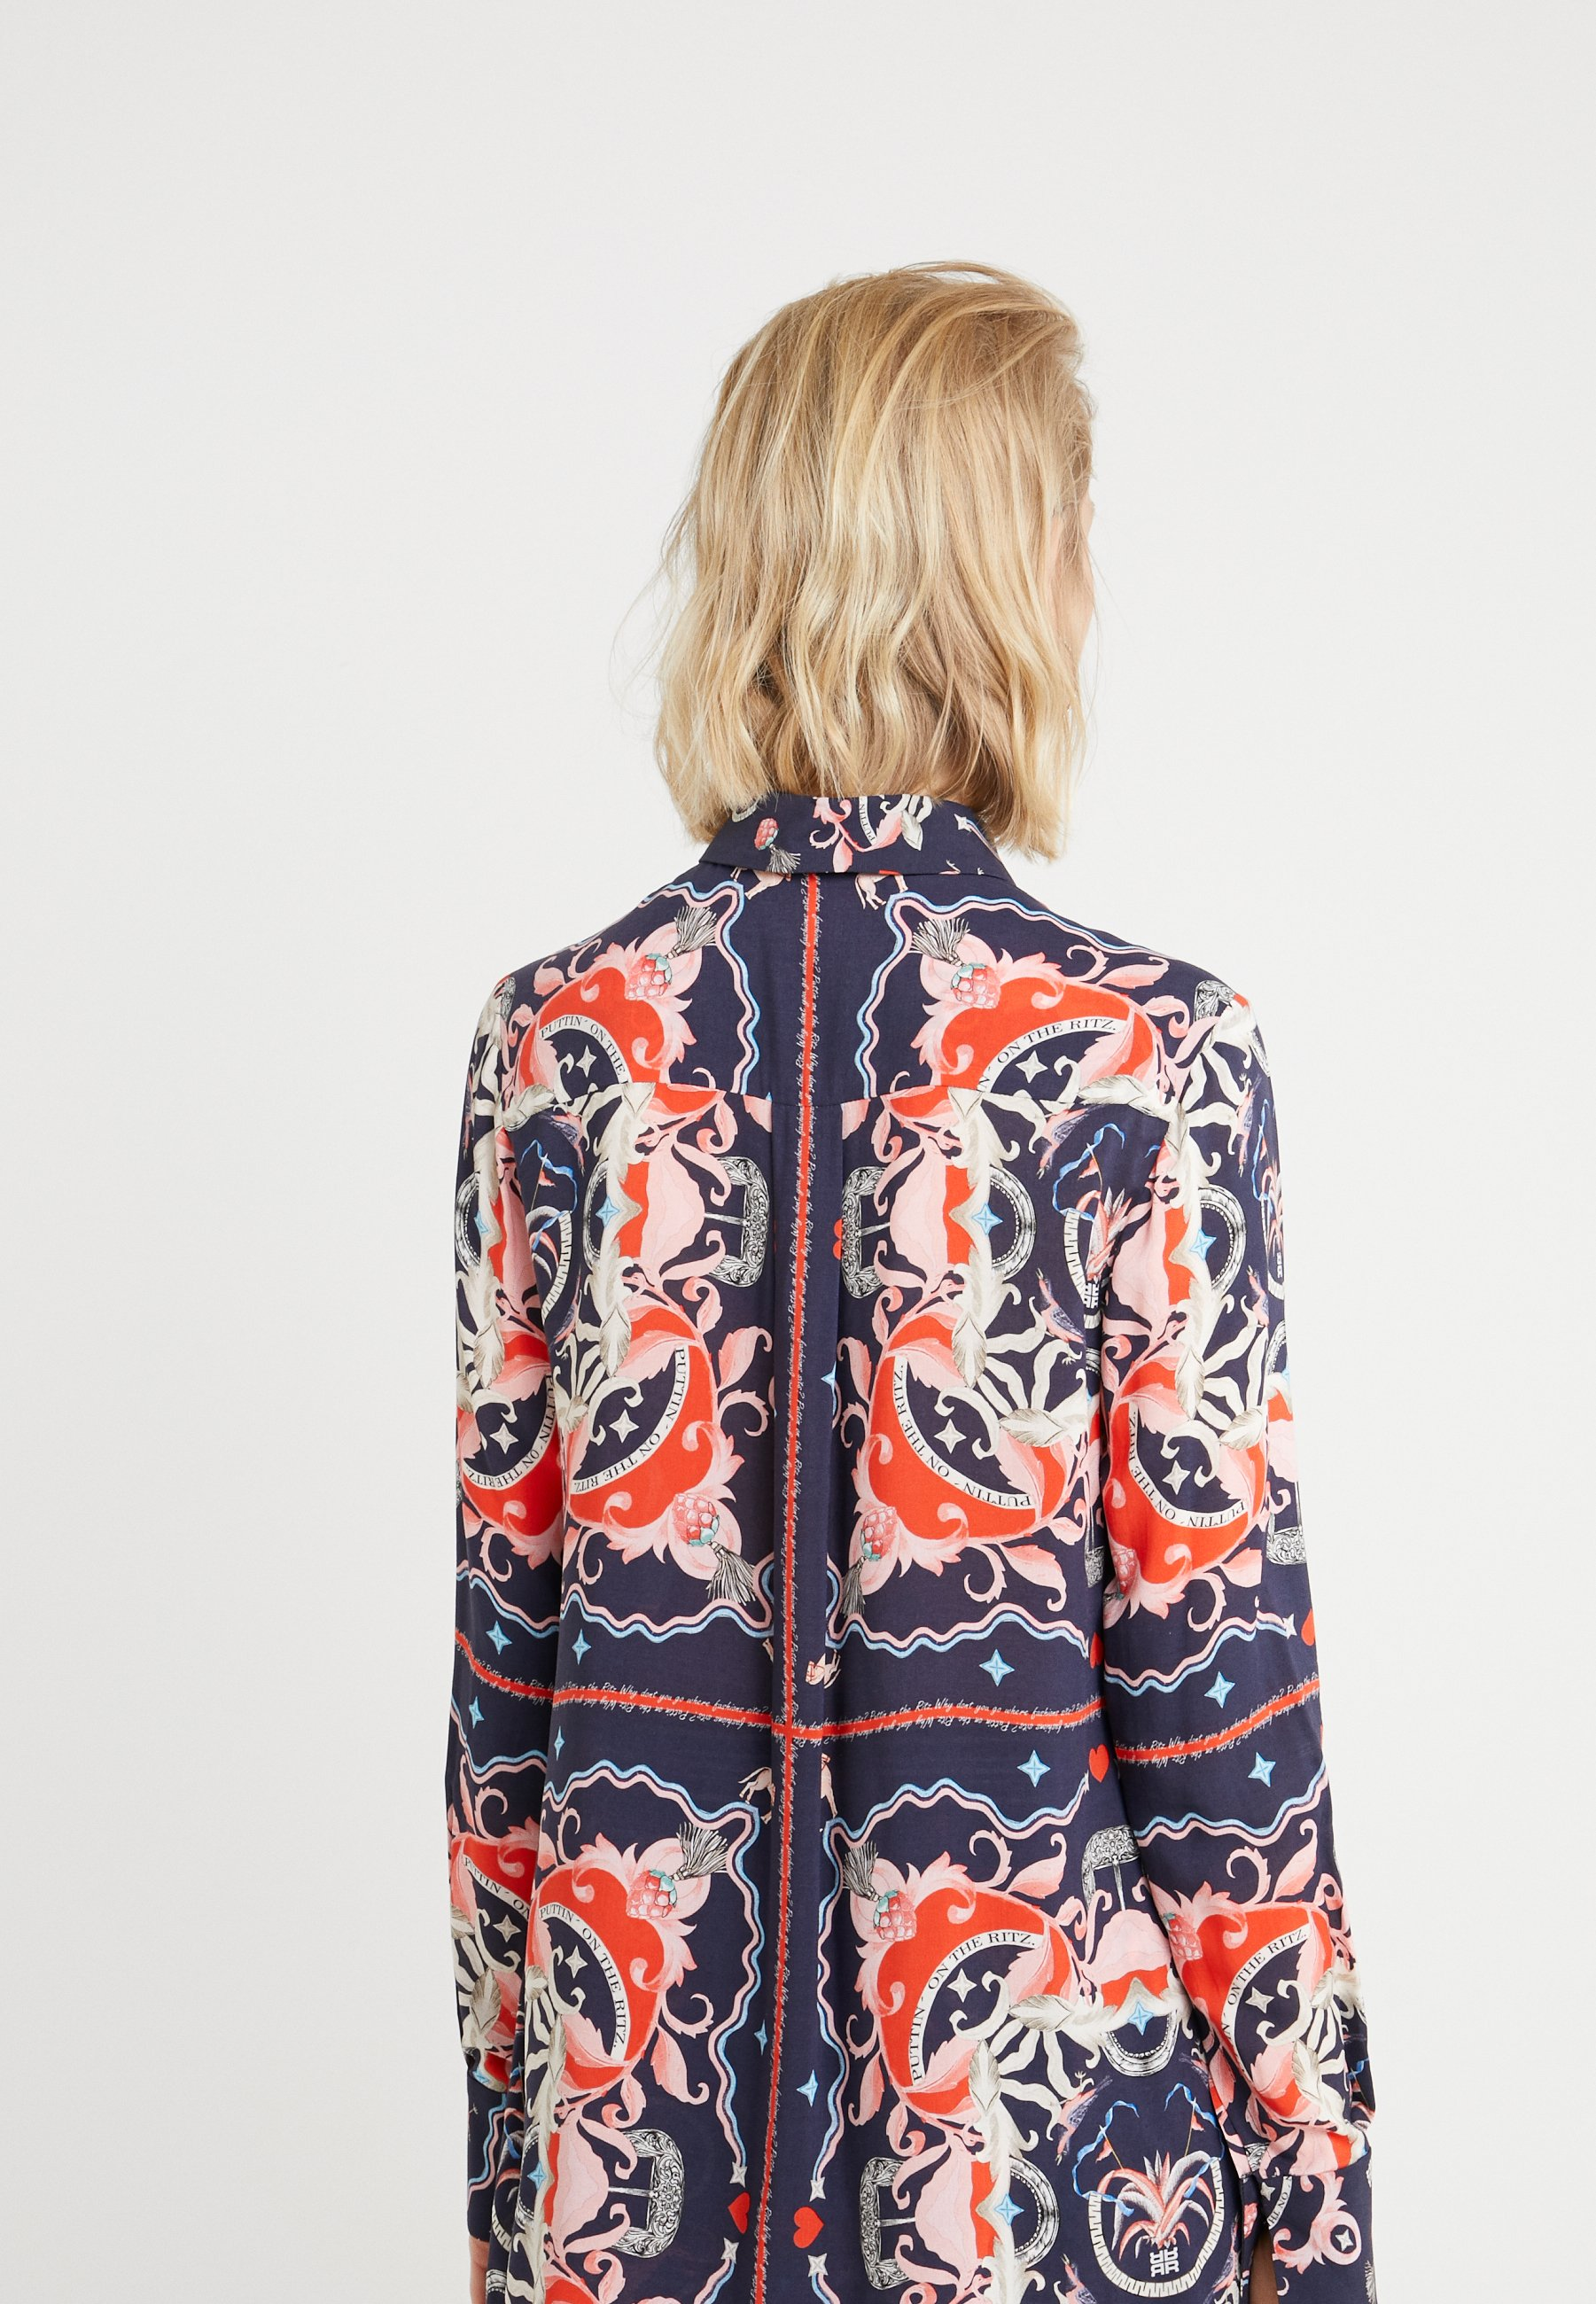 RIANI Button-down blouse - deep blue patterned oMRdS